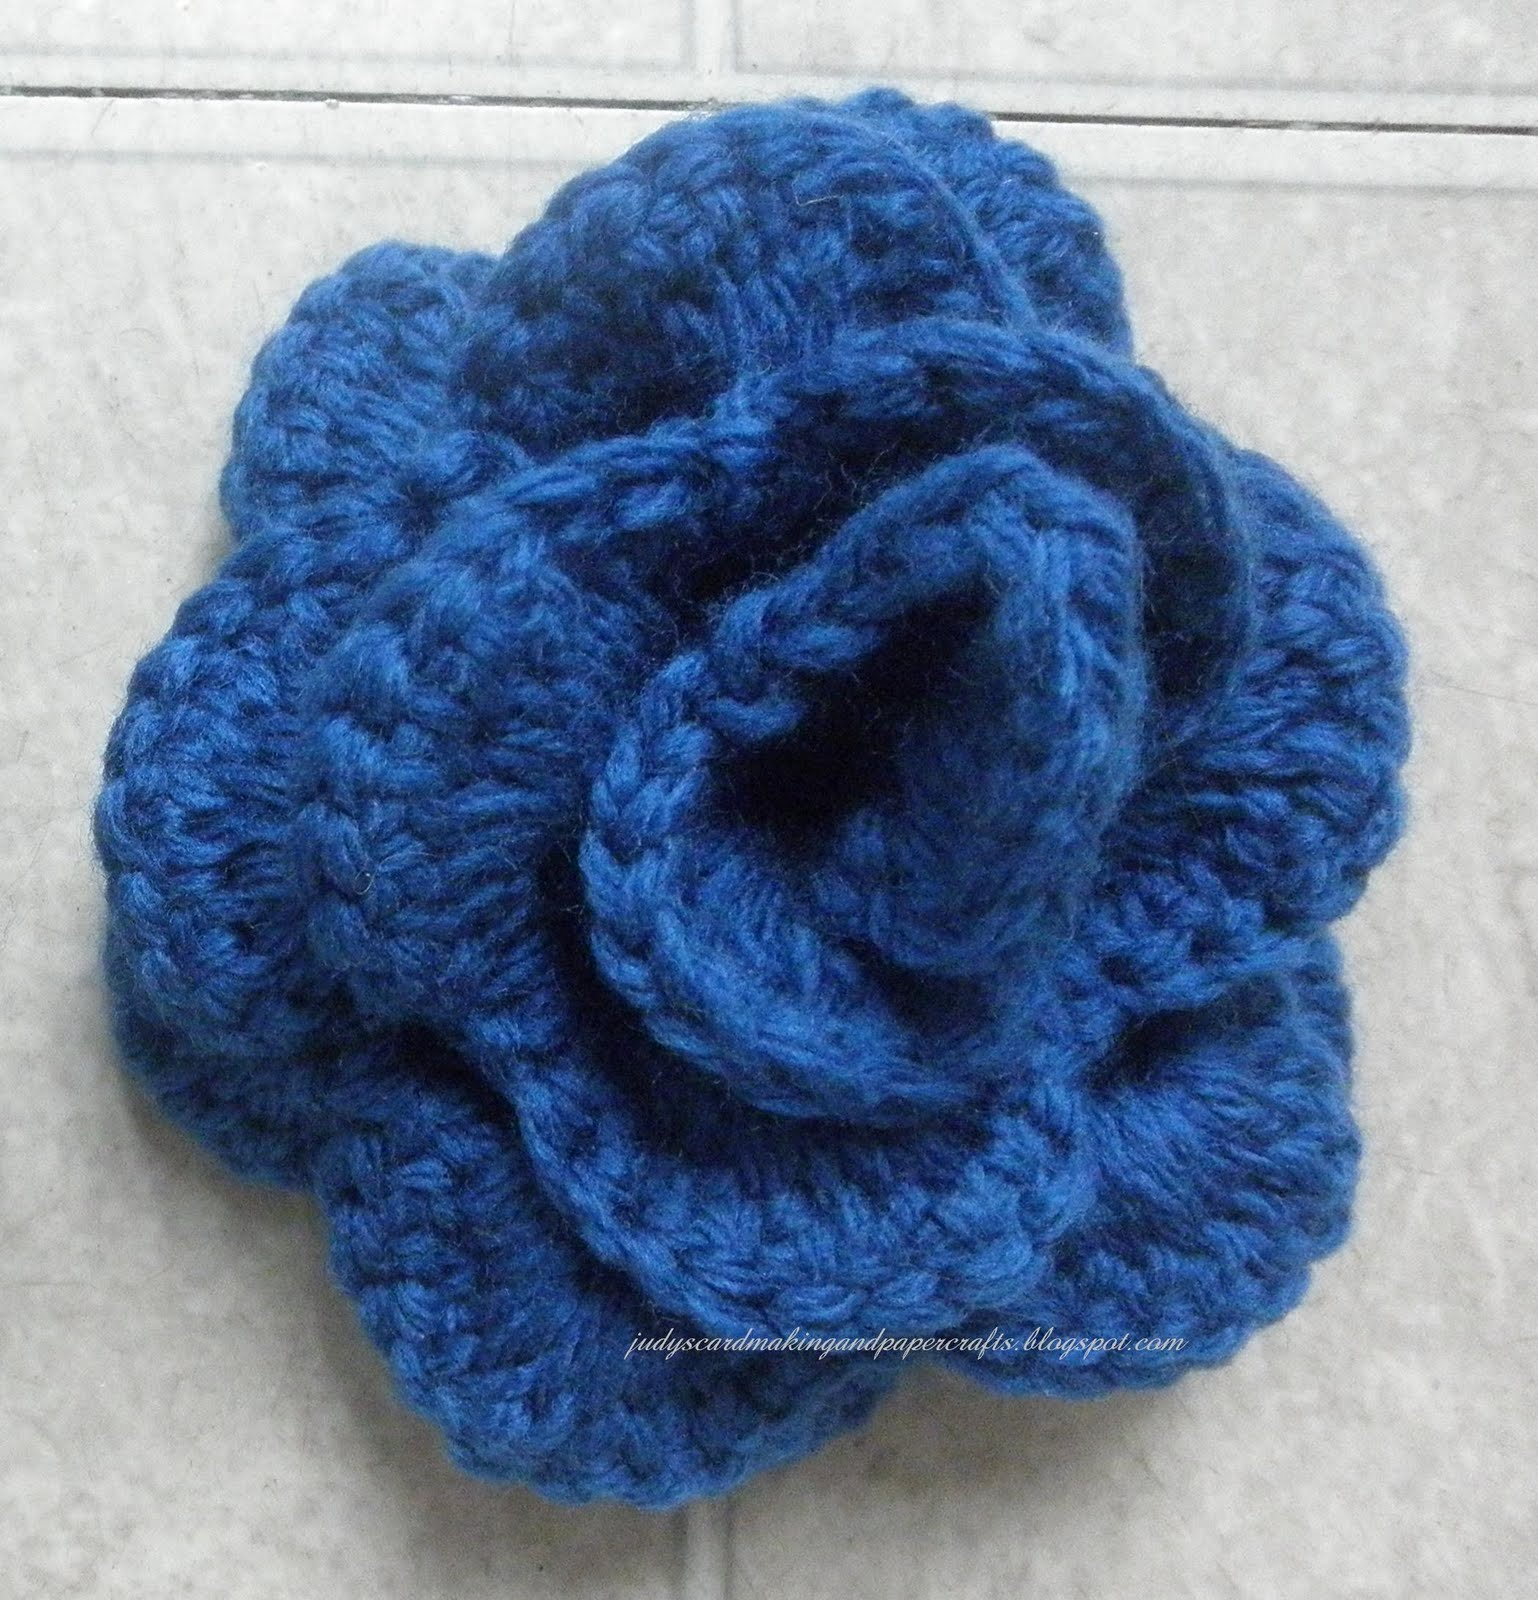 FREE CROCHET PATTERNS ROSES - Crochet and Knitting Patterns